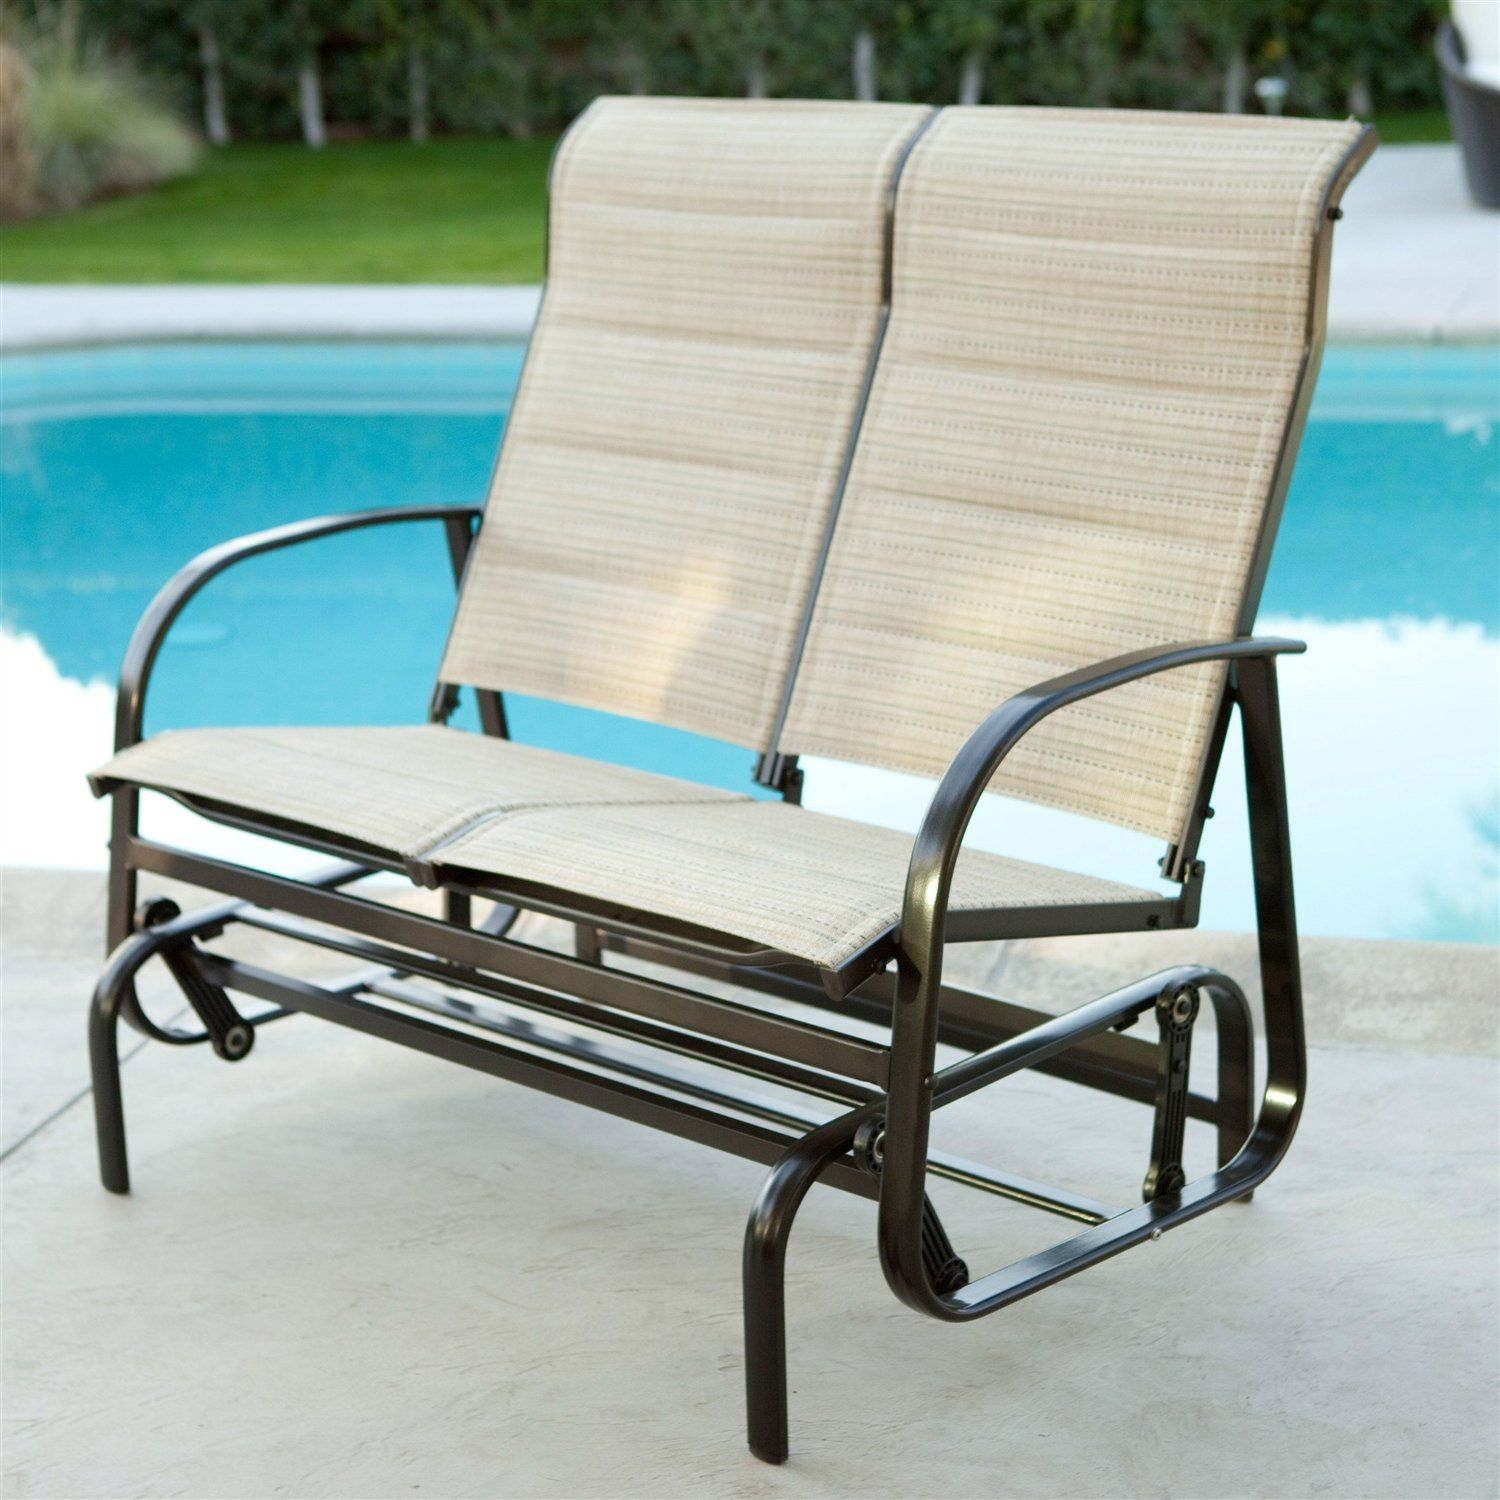 Outdoor Glider Patio Chair Loveseat With Padded Sling Seats Within Padded Sling Double Gliders (View 9 of 25)